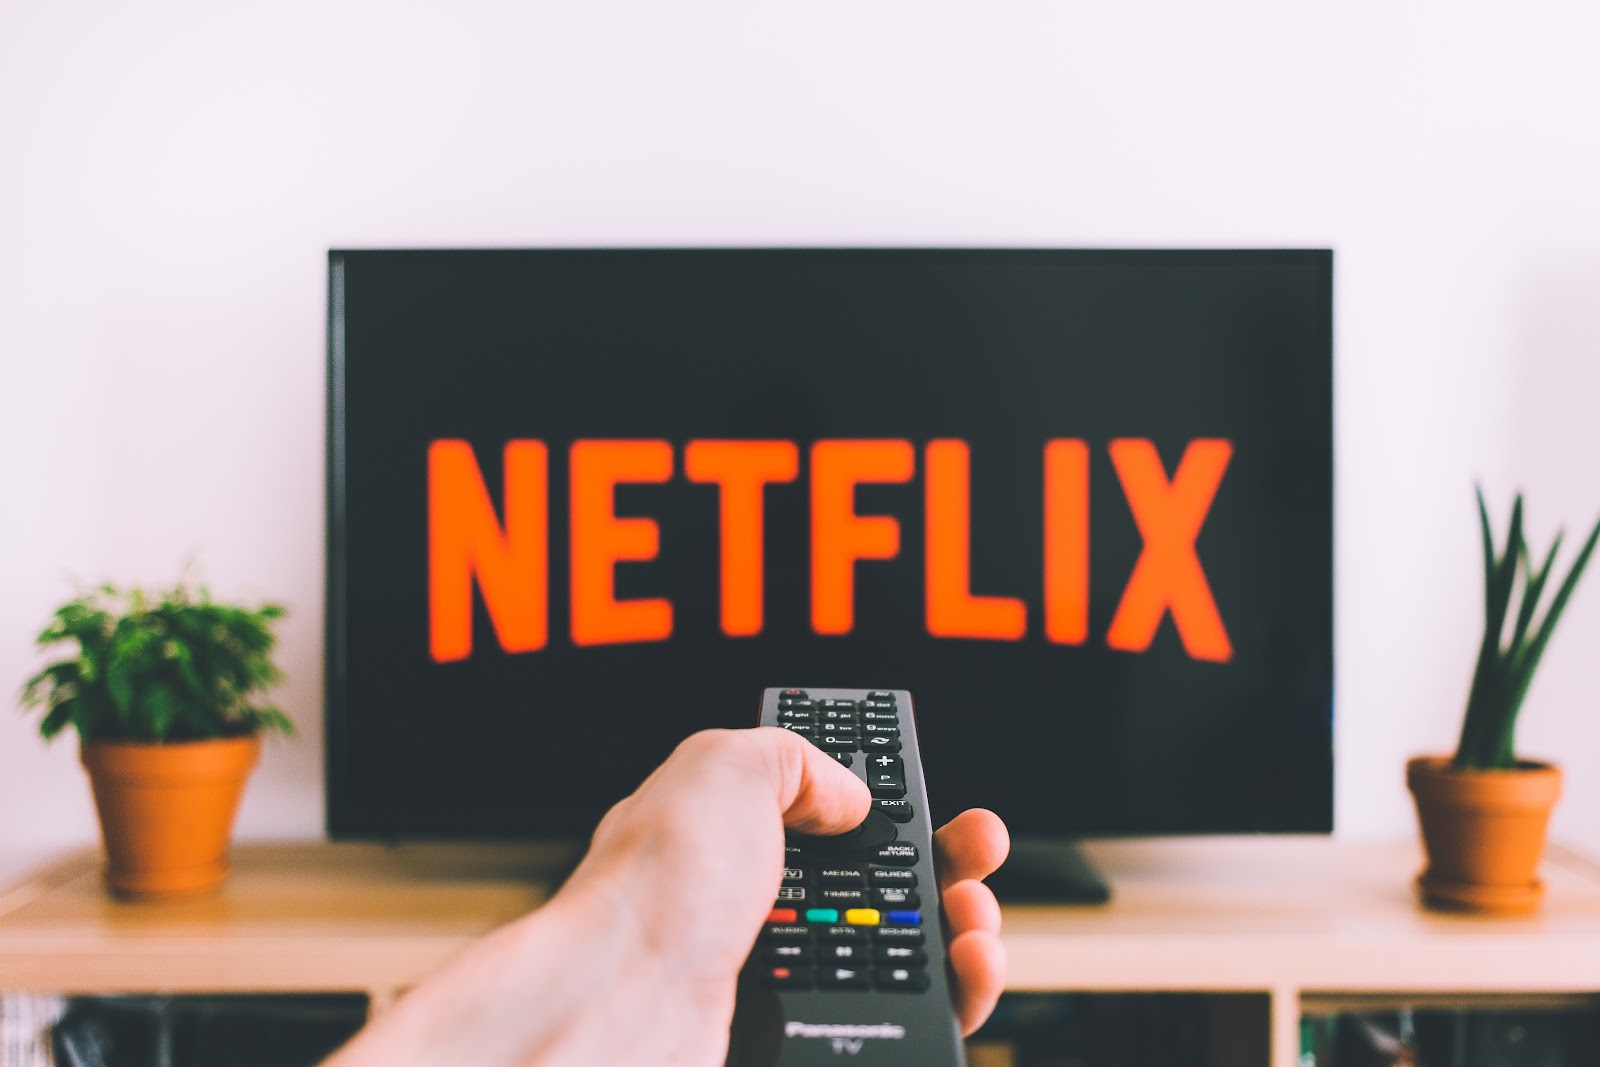 A hand pointing a remote at a tv displaying the Netflix logo